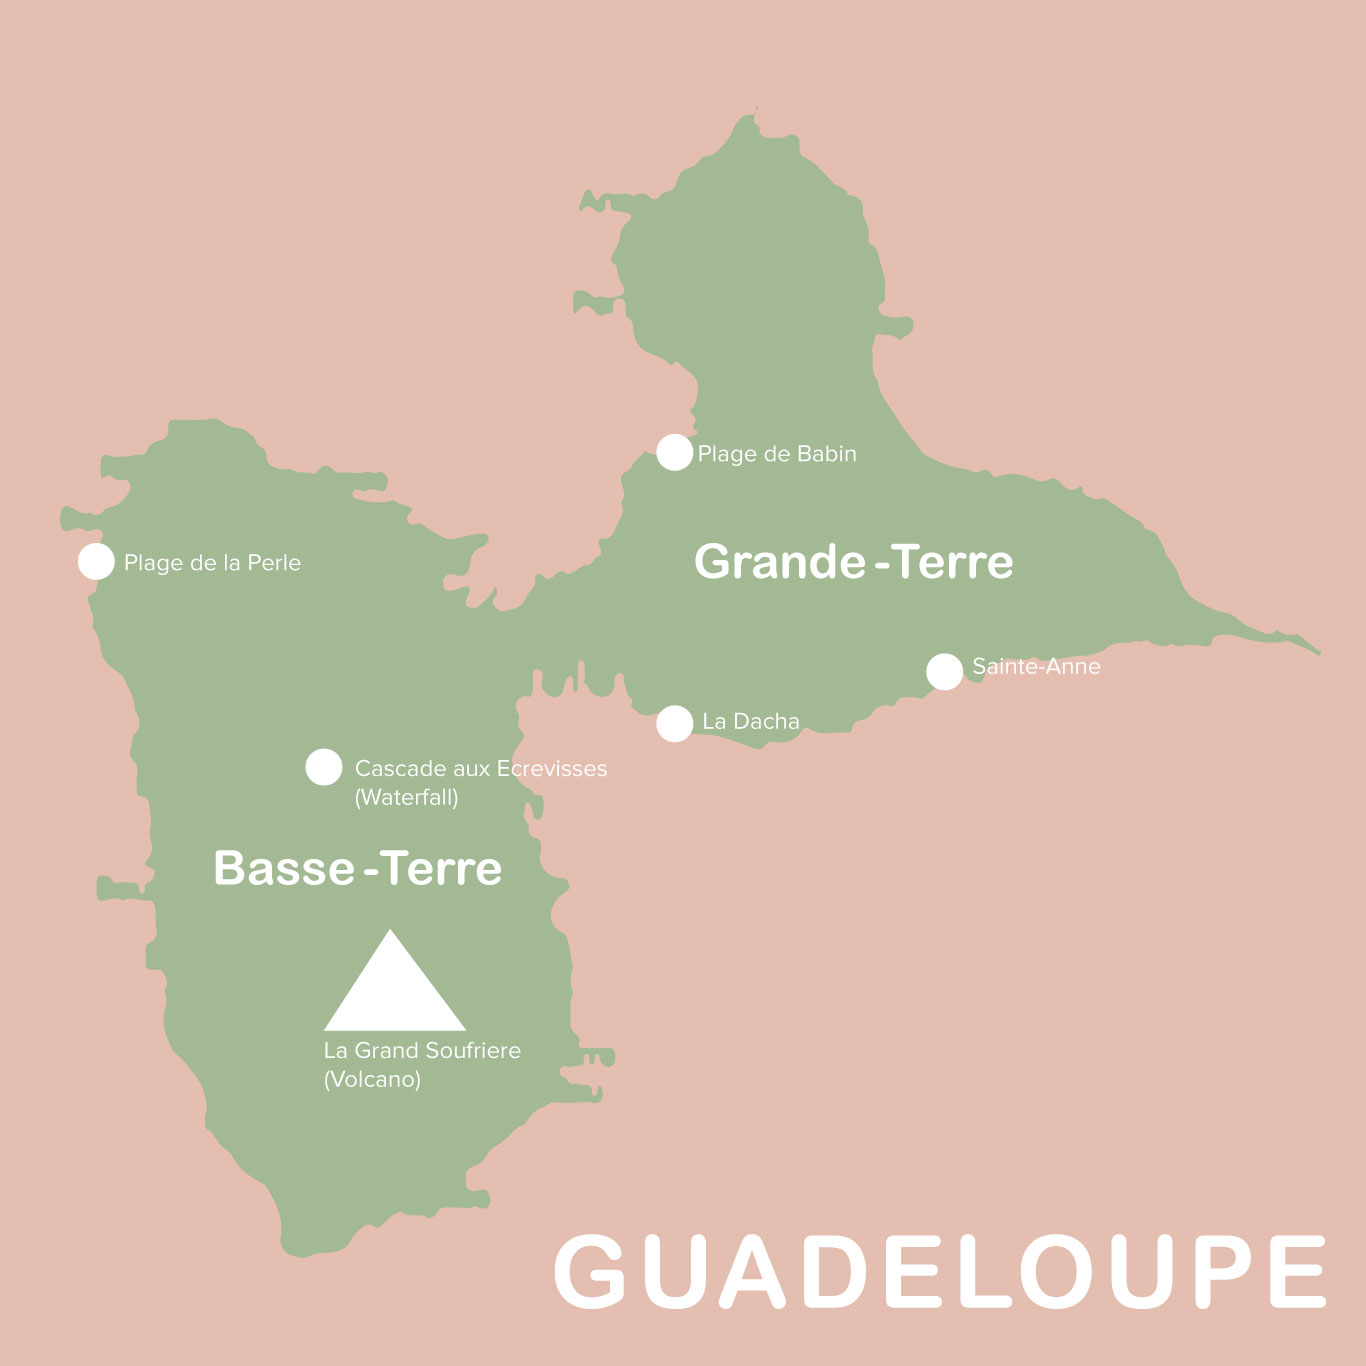 guadeloupe-map things to do in guadeloupe